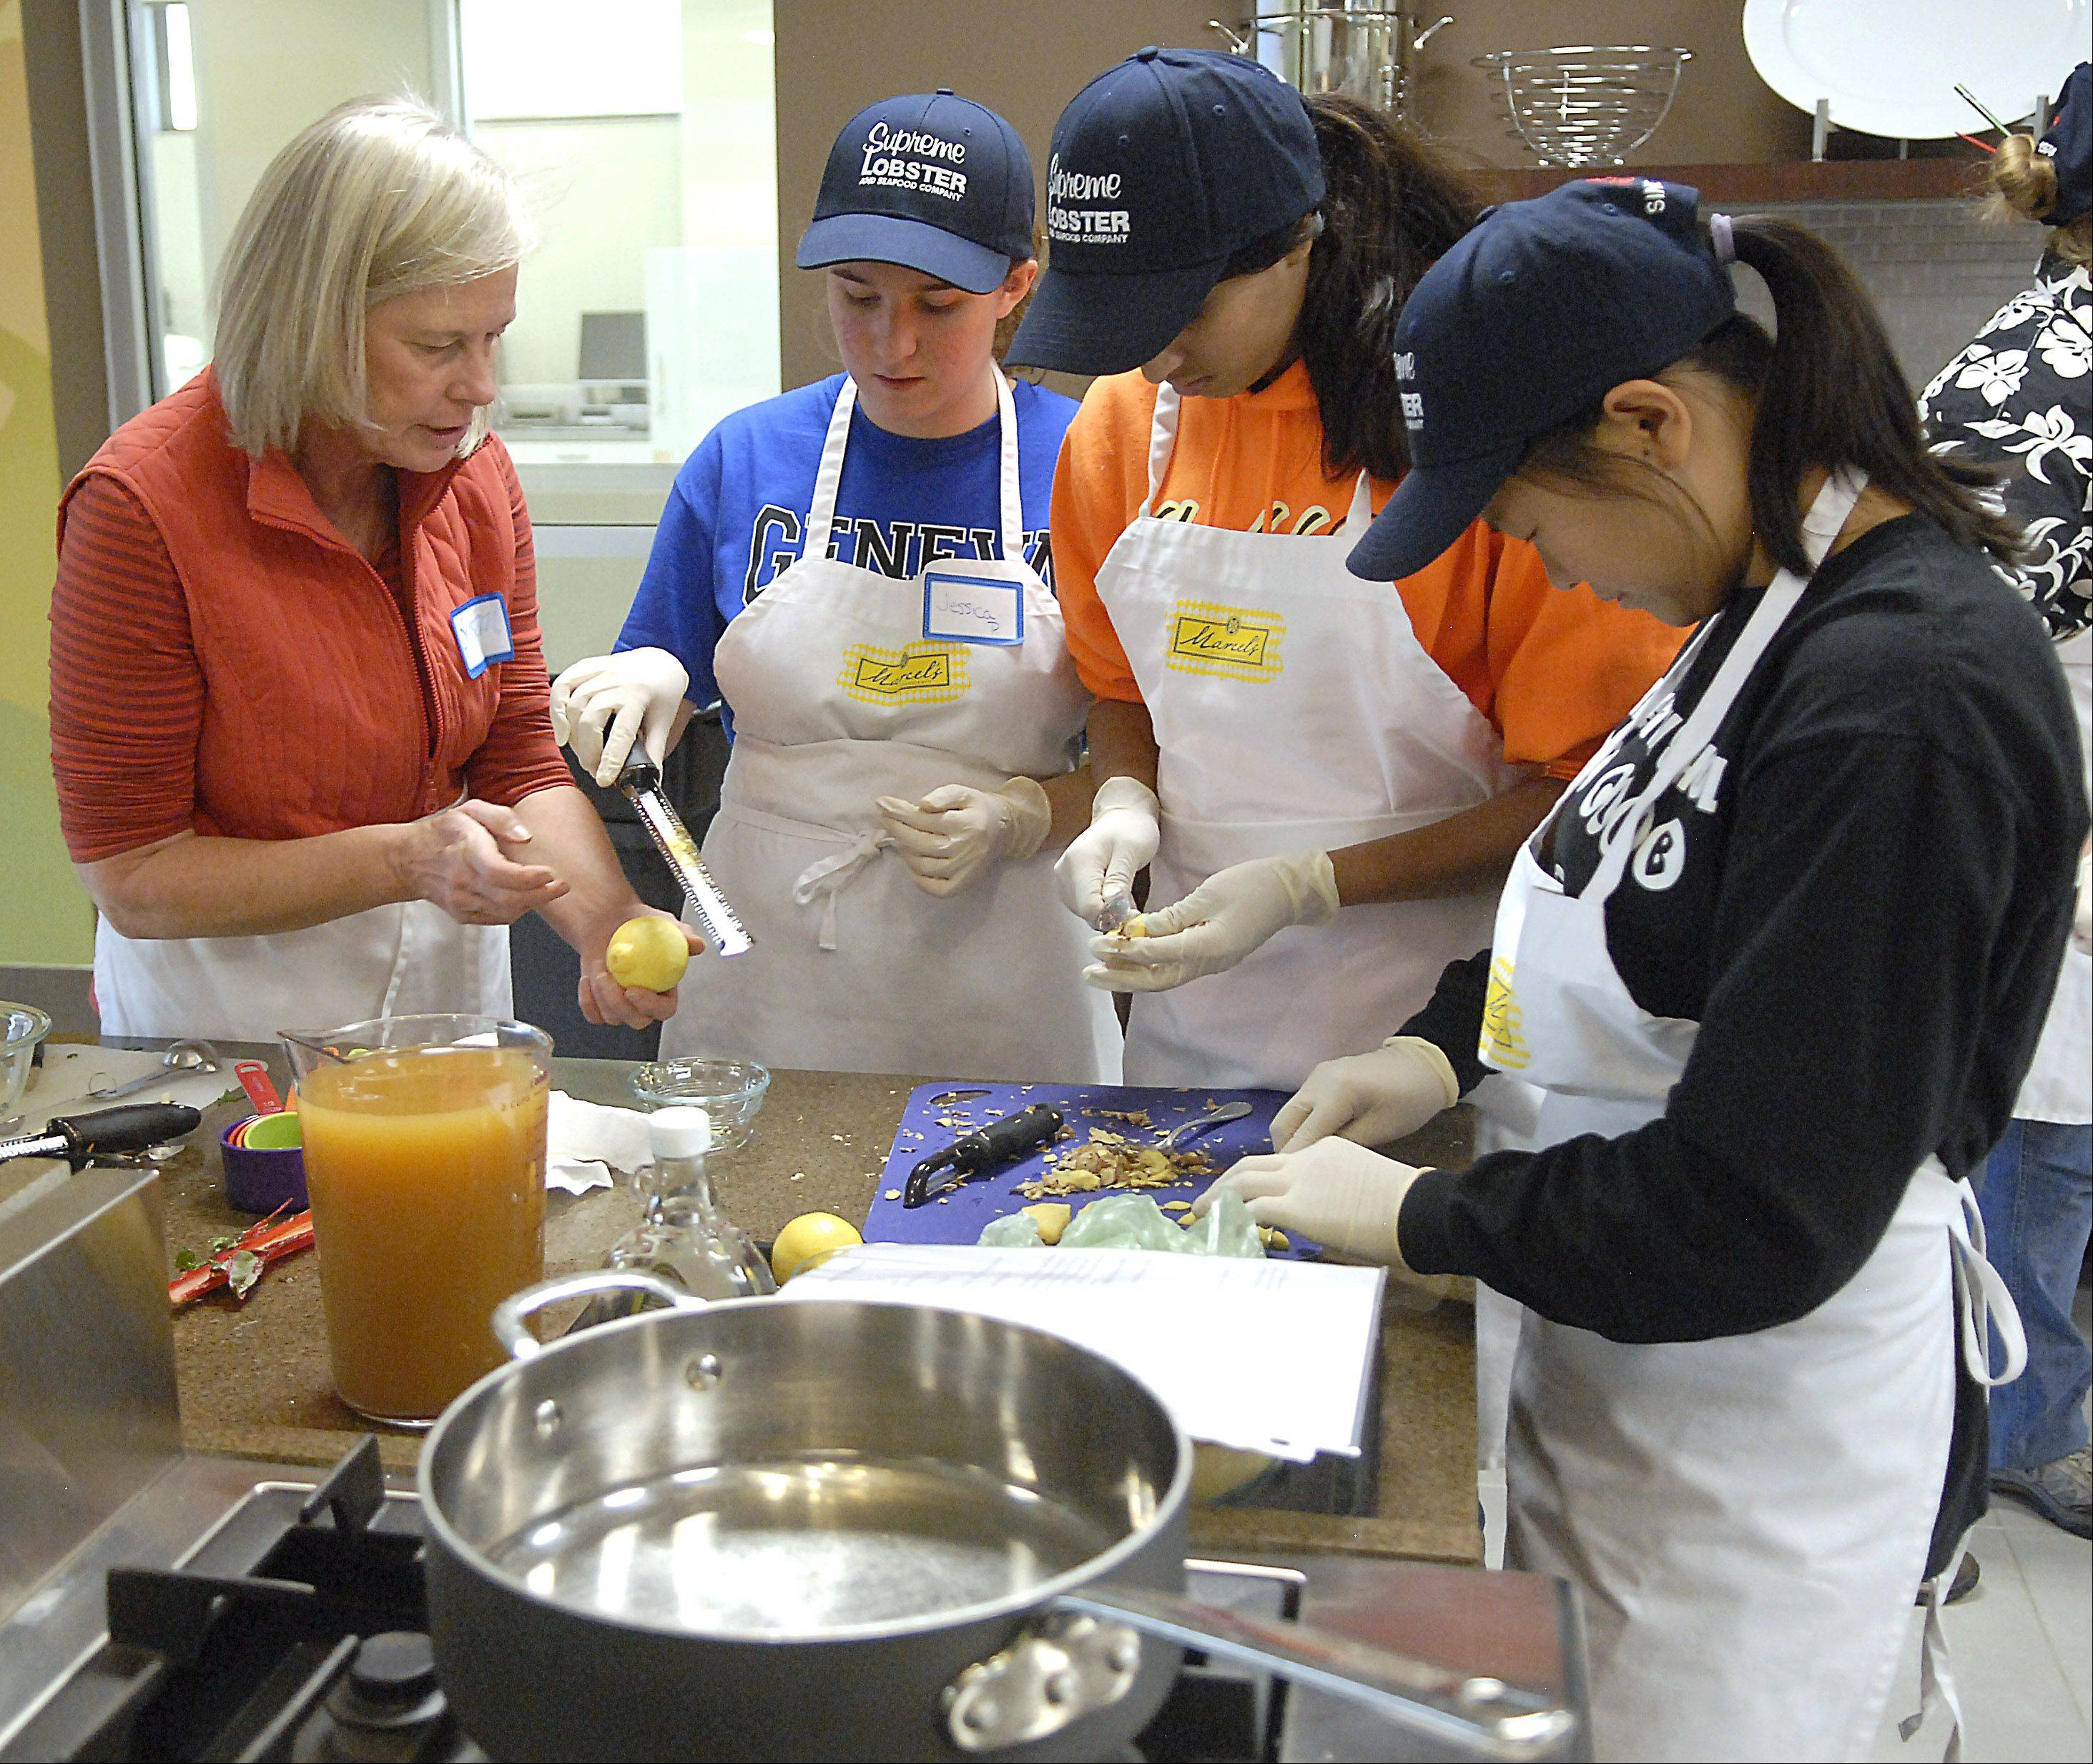 Program director Susan Leigh of Geneva helps Geneva High School students Jessica Prainito, Nila Kannankeril and Anna Green, all 16, while cooking a poached pear dessert at the Roquette kitchen in Geneva. The meals made were for seven cancer patients.